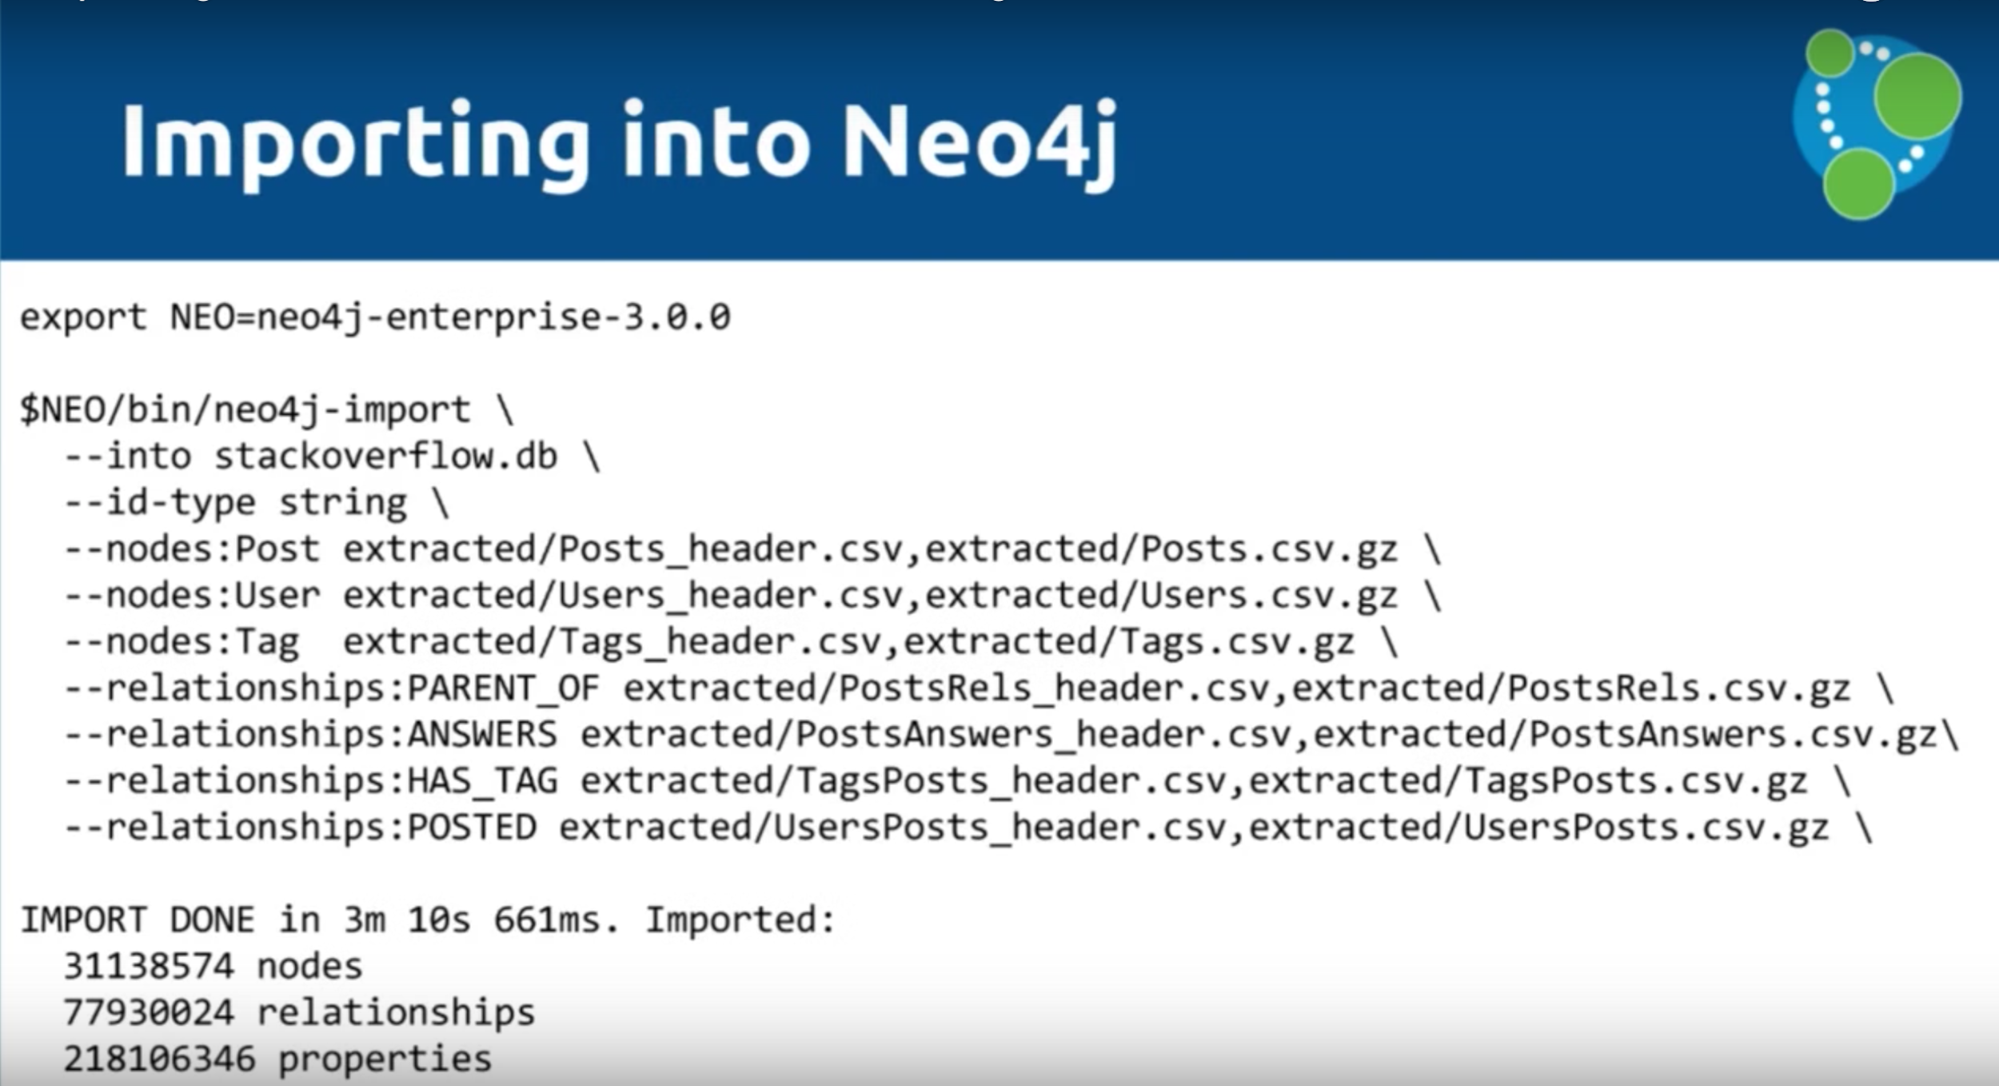 A data import example for Neo4j 3.0